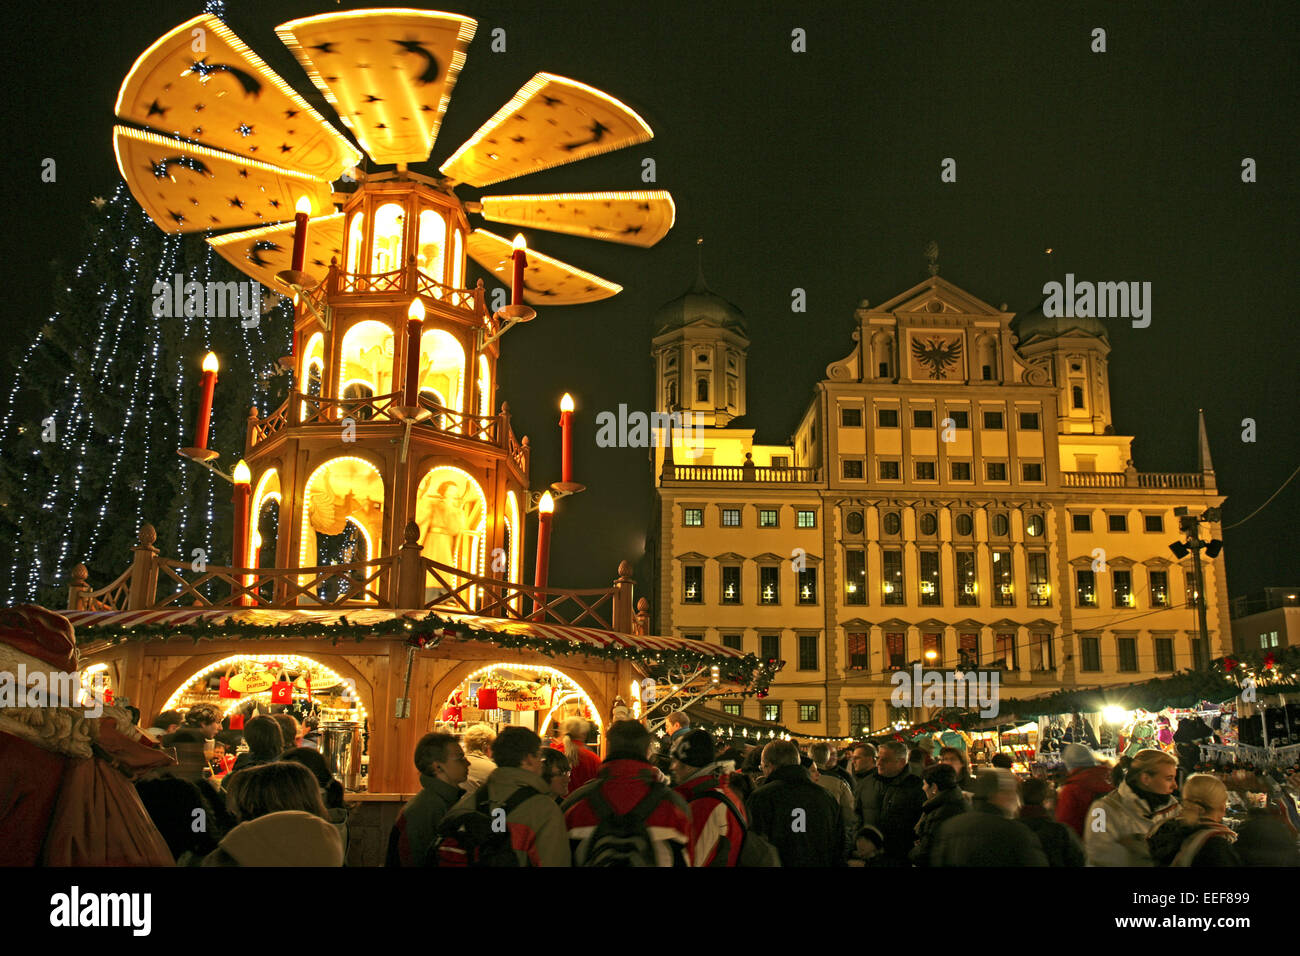 deutschland augsburg rathausplatz weihnachtsmarkt abend. Black Bedroom Furniture Sets. Home Design Ideas